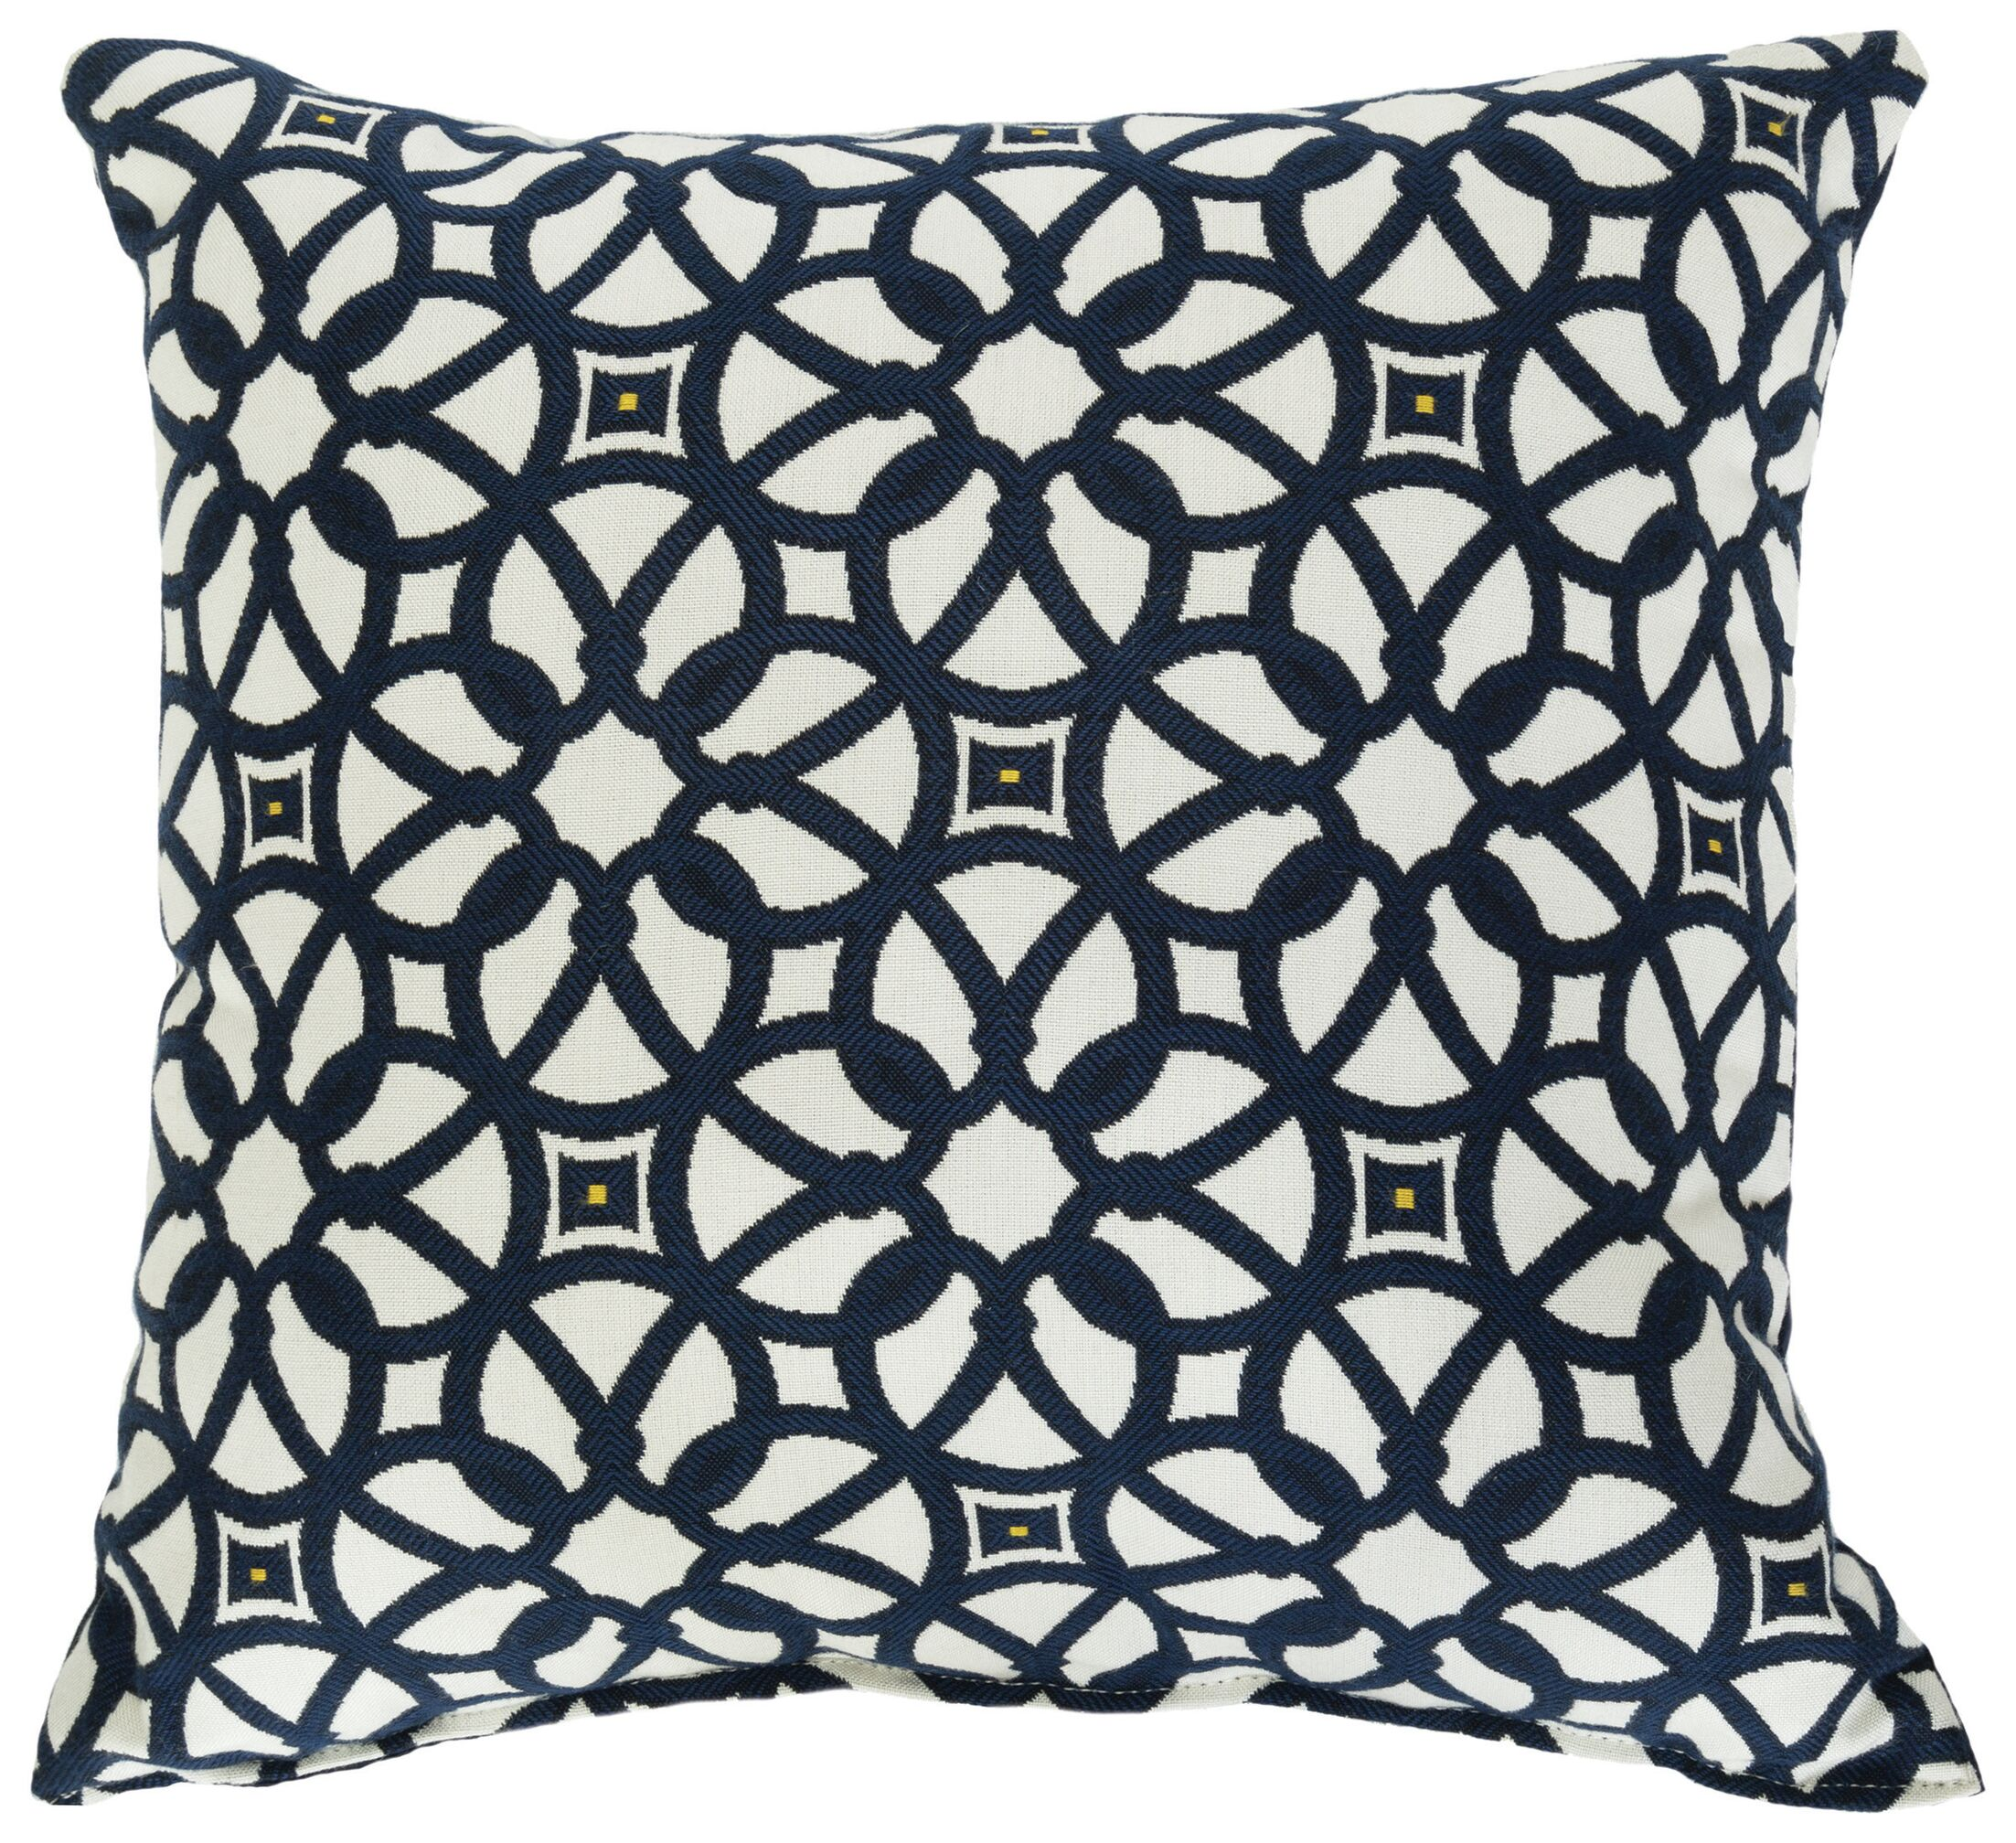 Edens Square Hammock Pillow